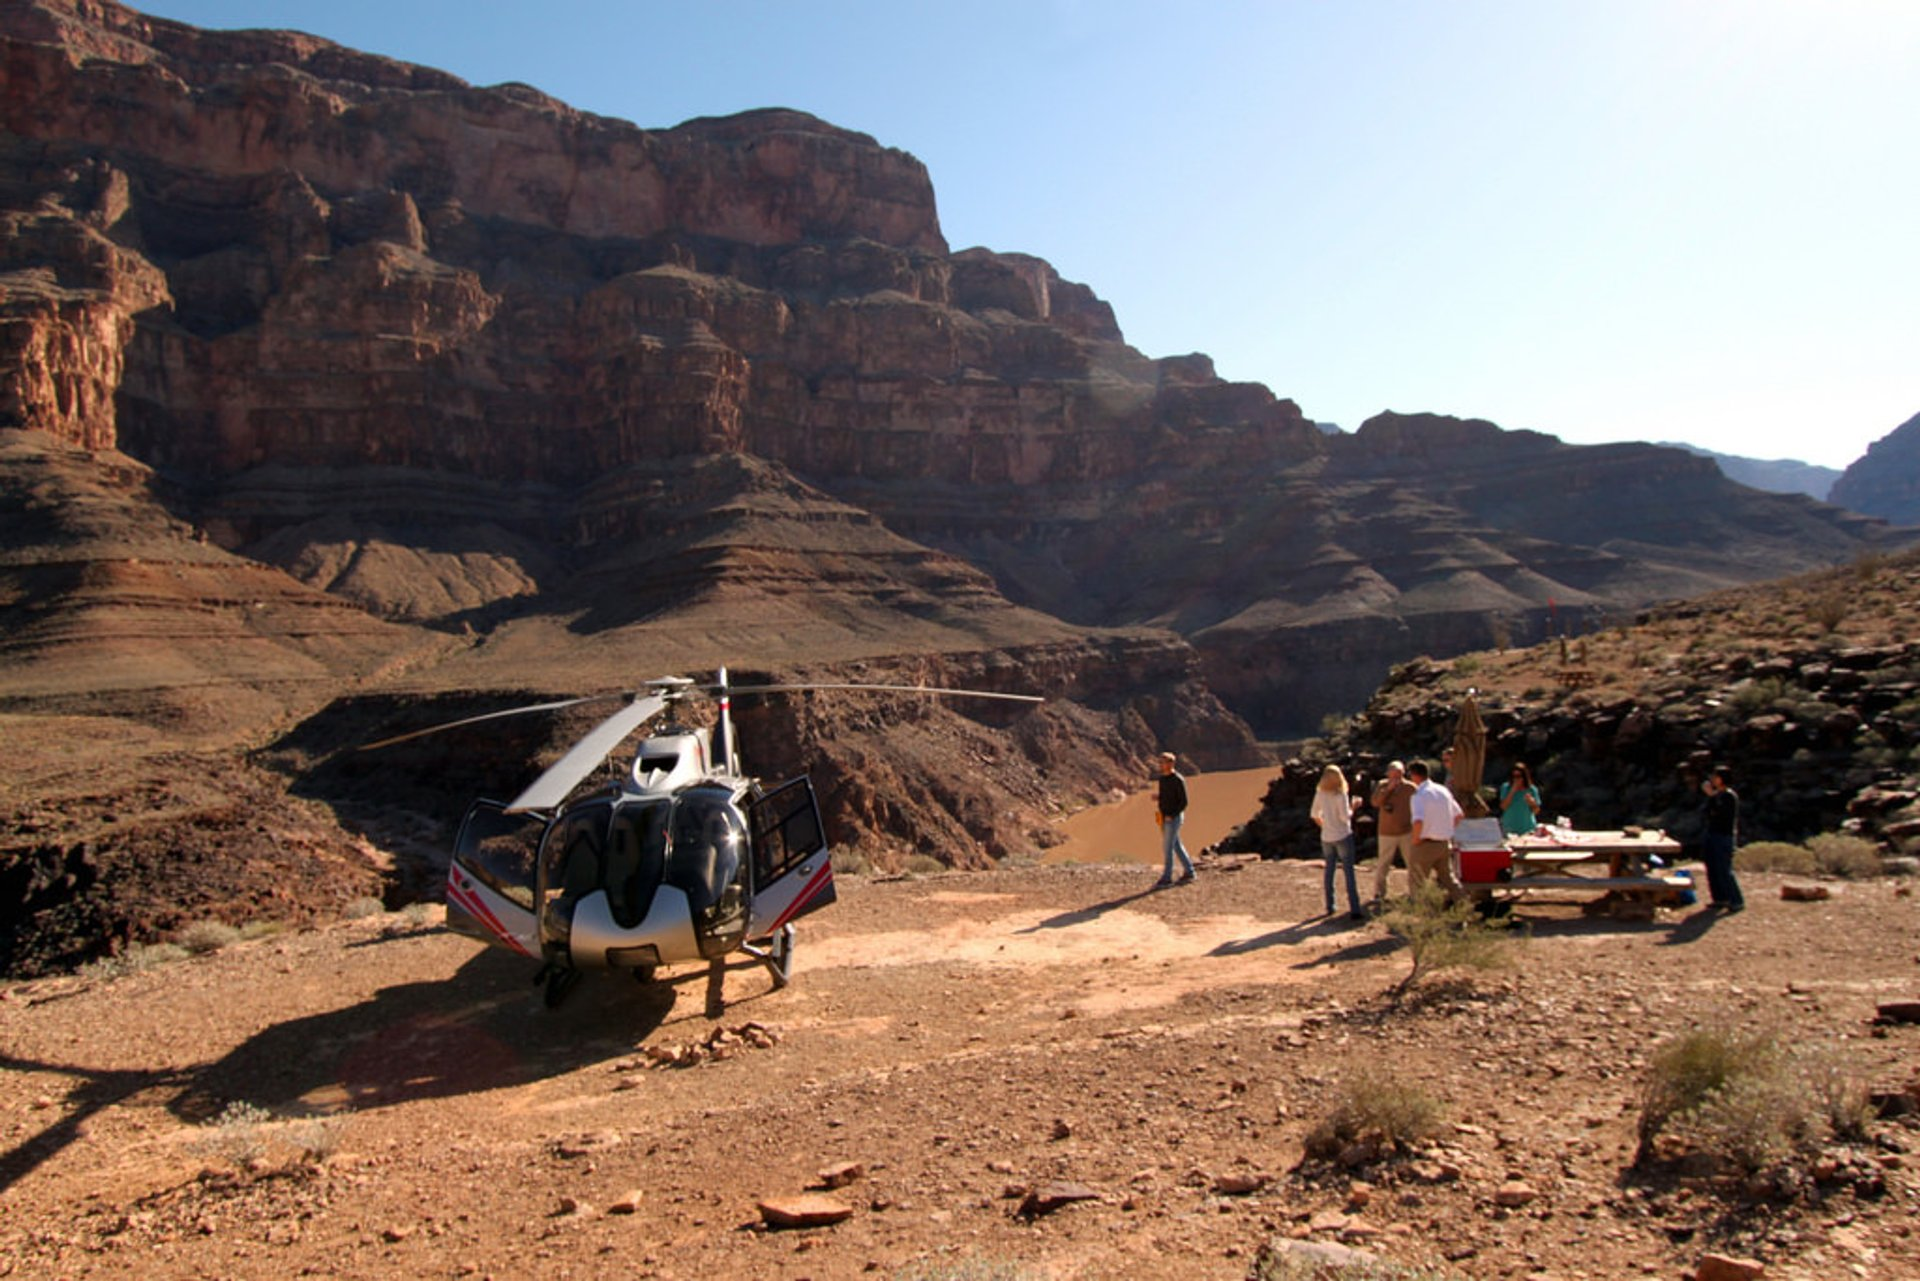 Private landing area & picnic table at West Grand Canyon, Arizona 2019